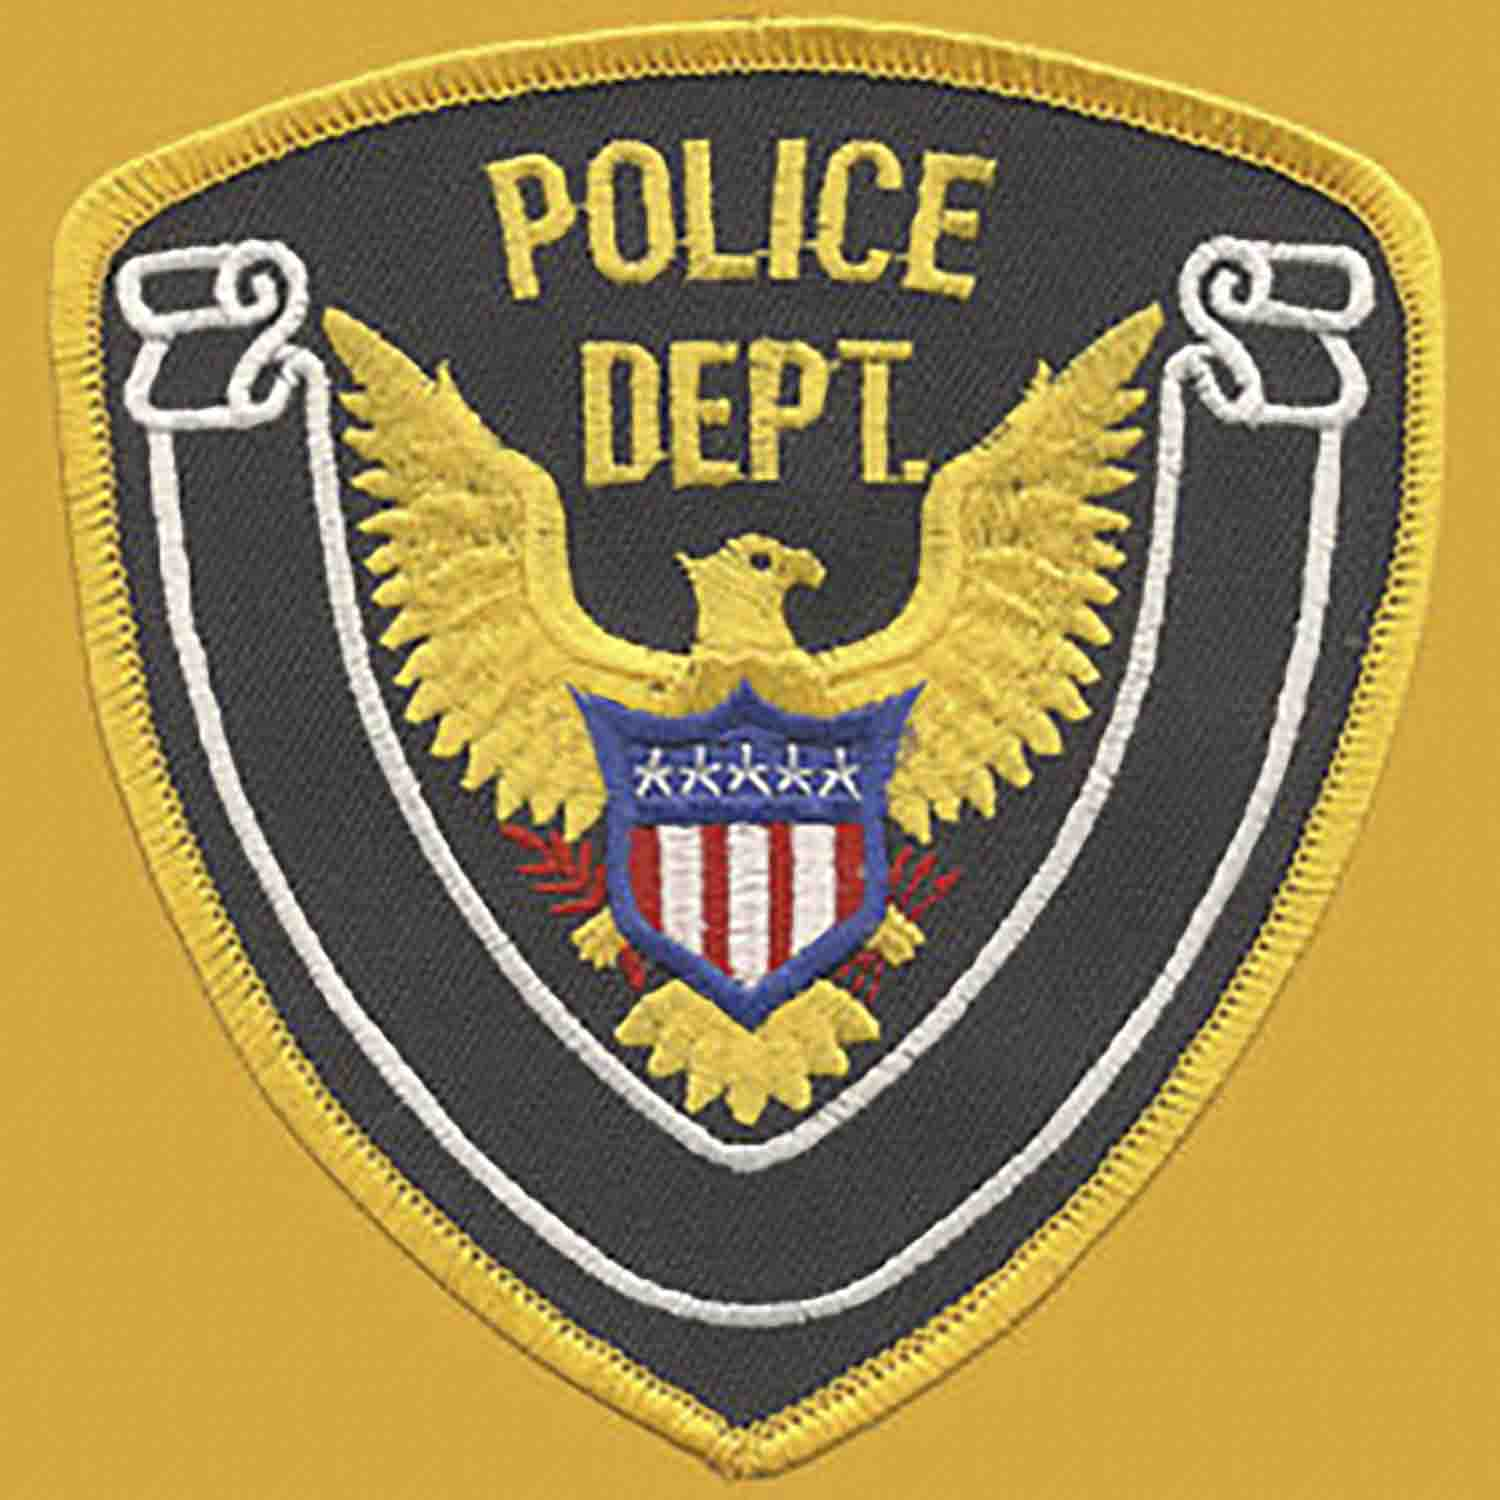 Premier Emblem Police Department Eagle Patch with Gold Borde